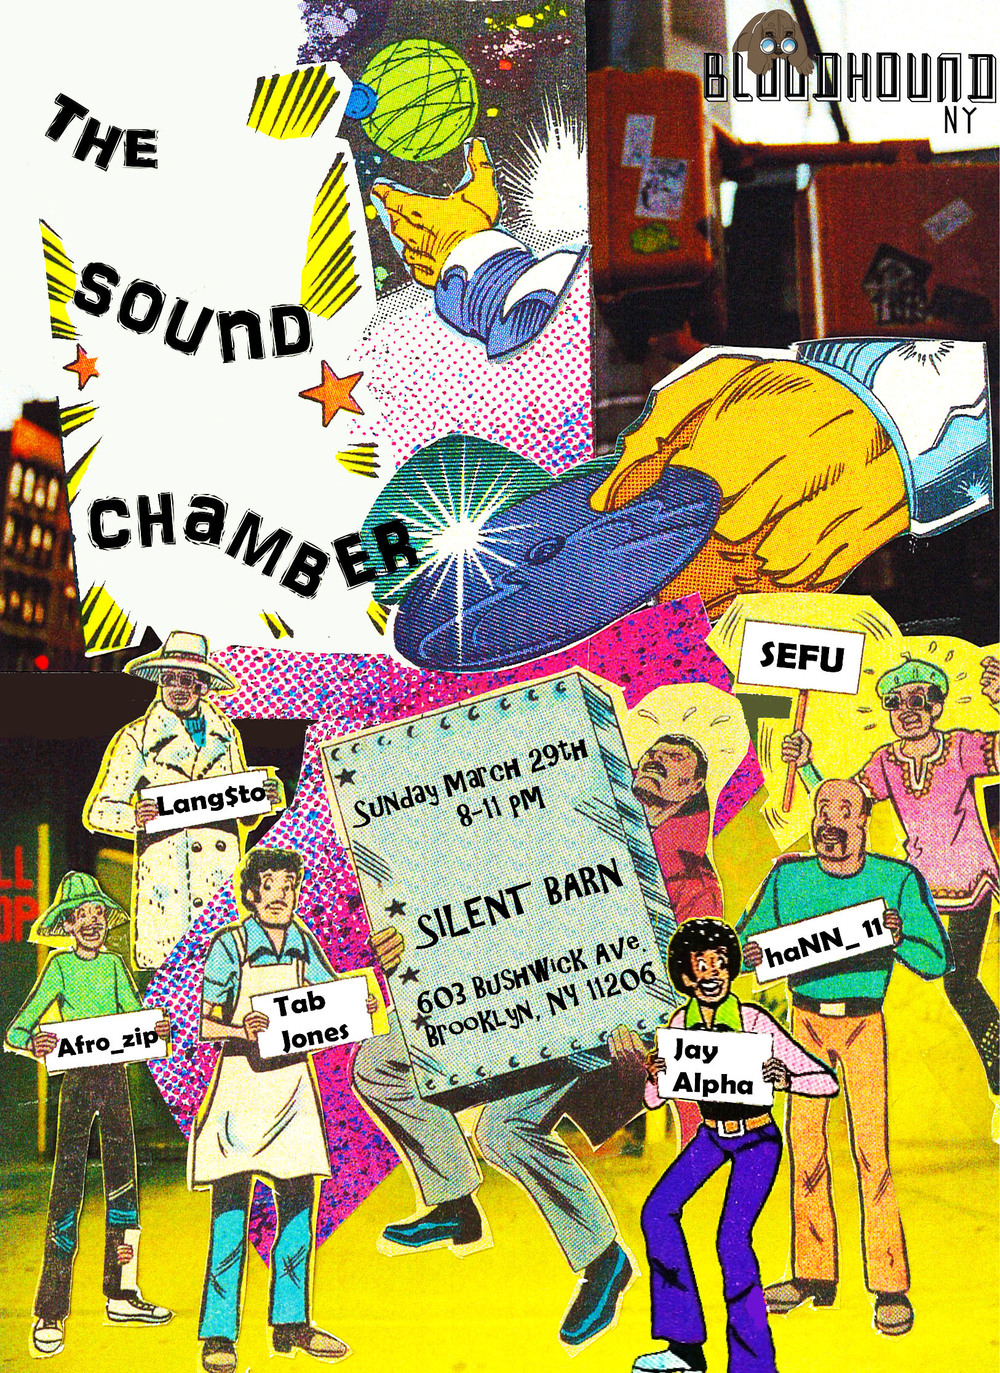 The Sound Chamber presented by Bloodhound NY